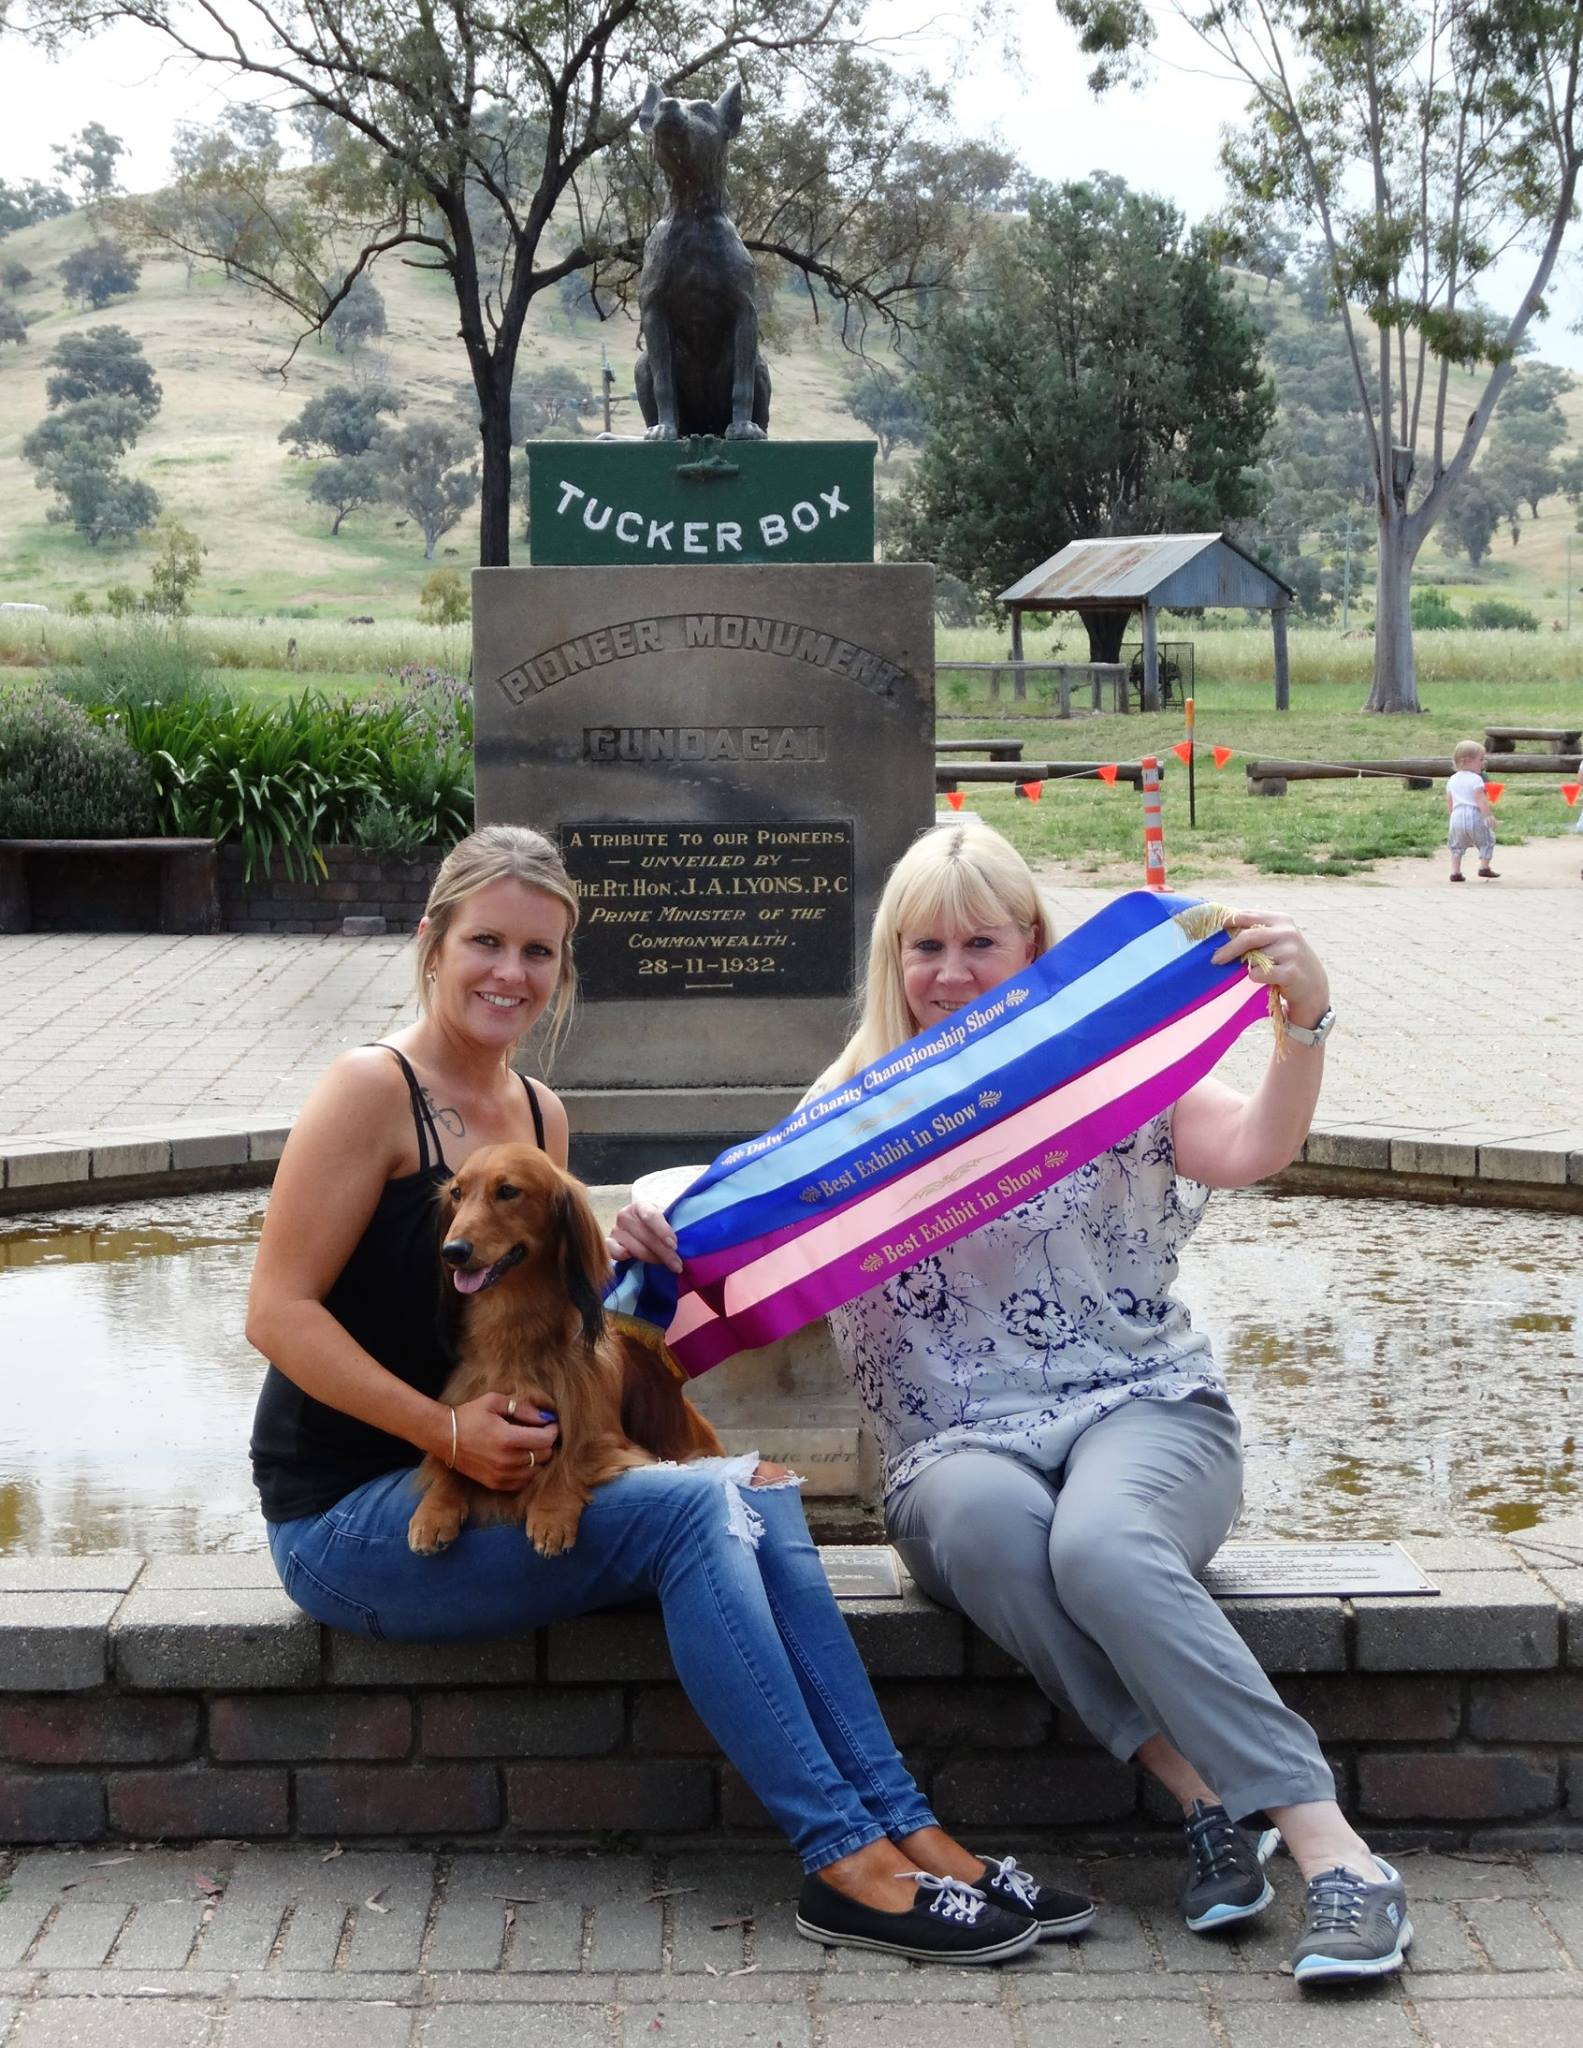 'Jimmy', Meaghan and Sue visiting the Dog on the Tuckerbox in Gundagai, NSW.